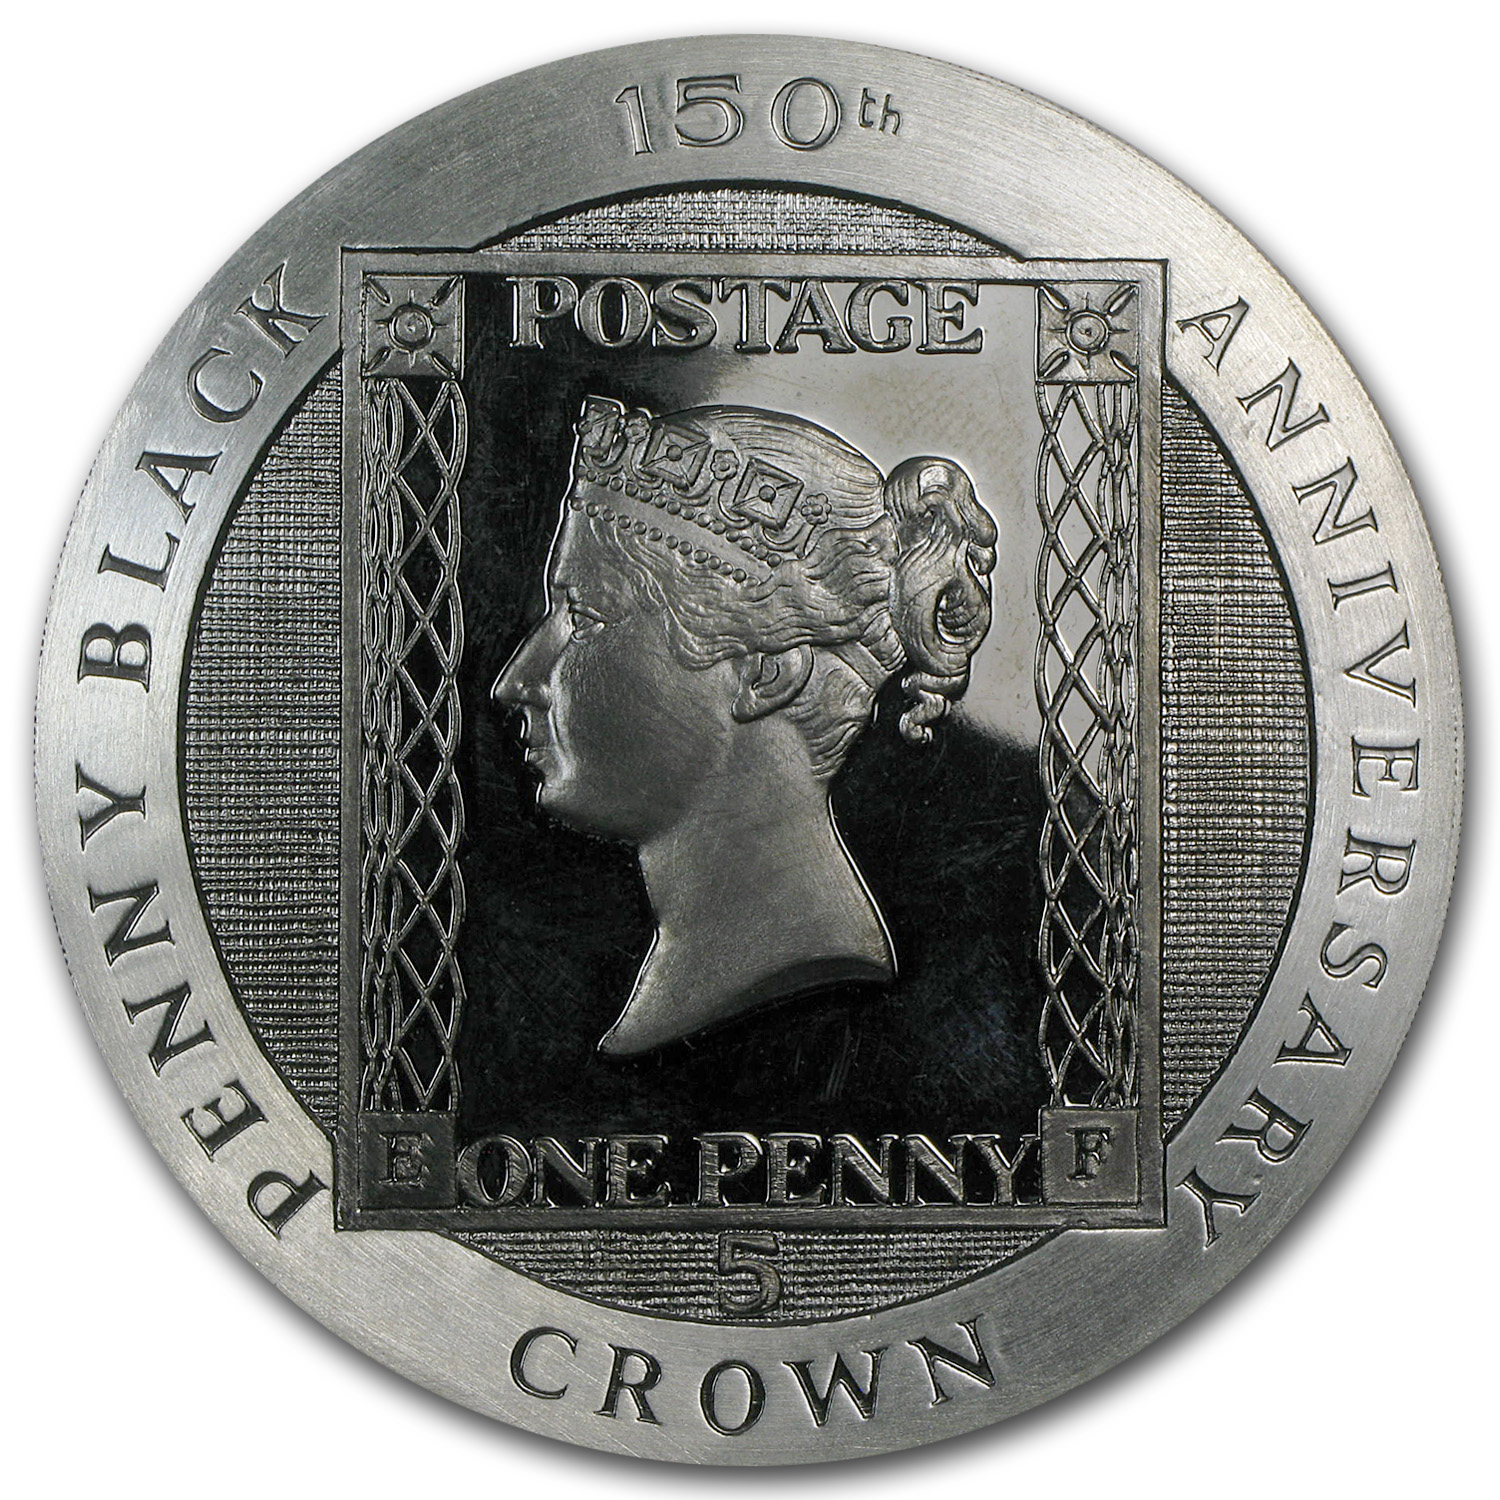 Isle of Man 1990 5 Crown Silver Penny Black